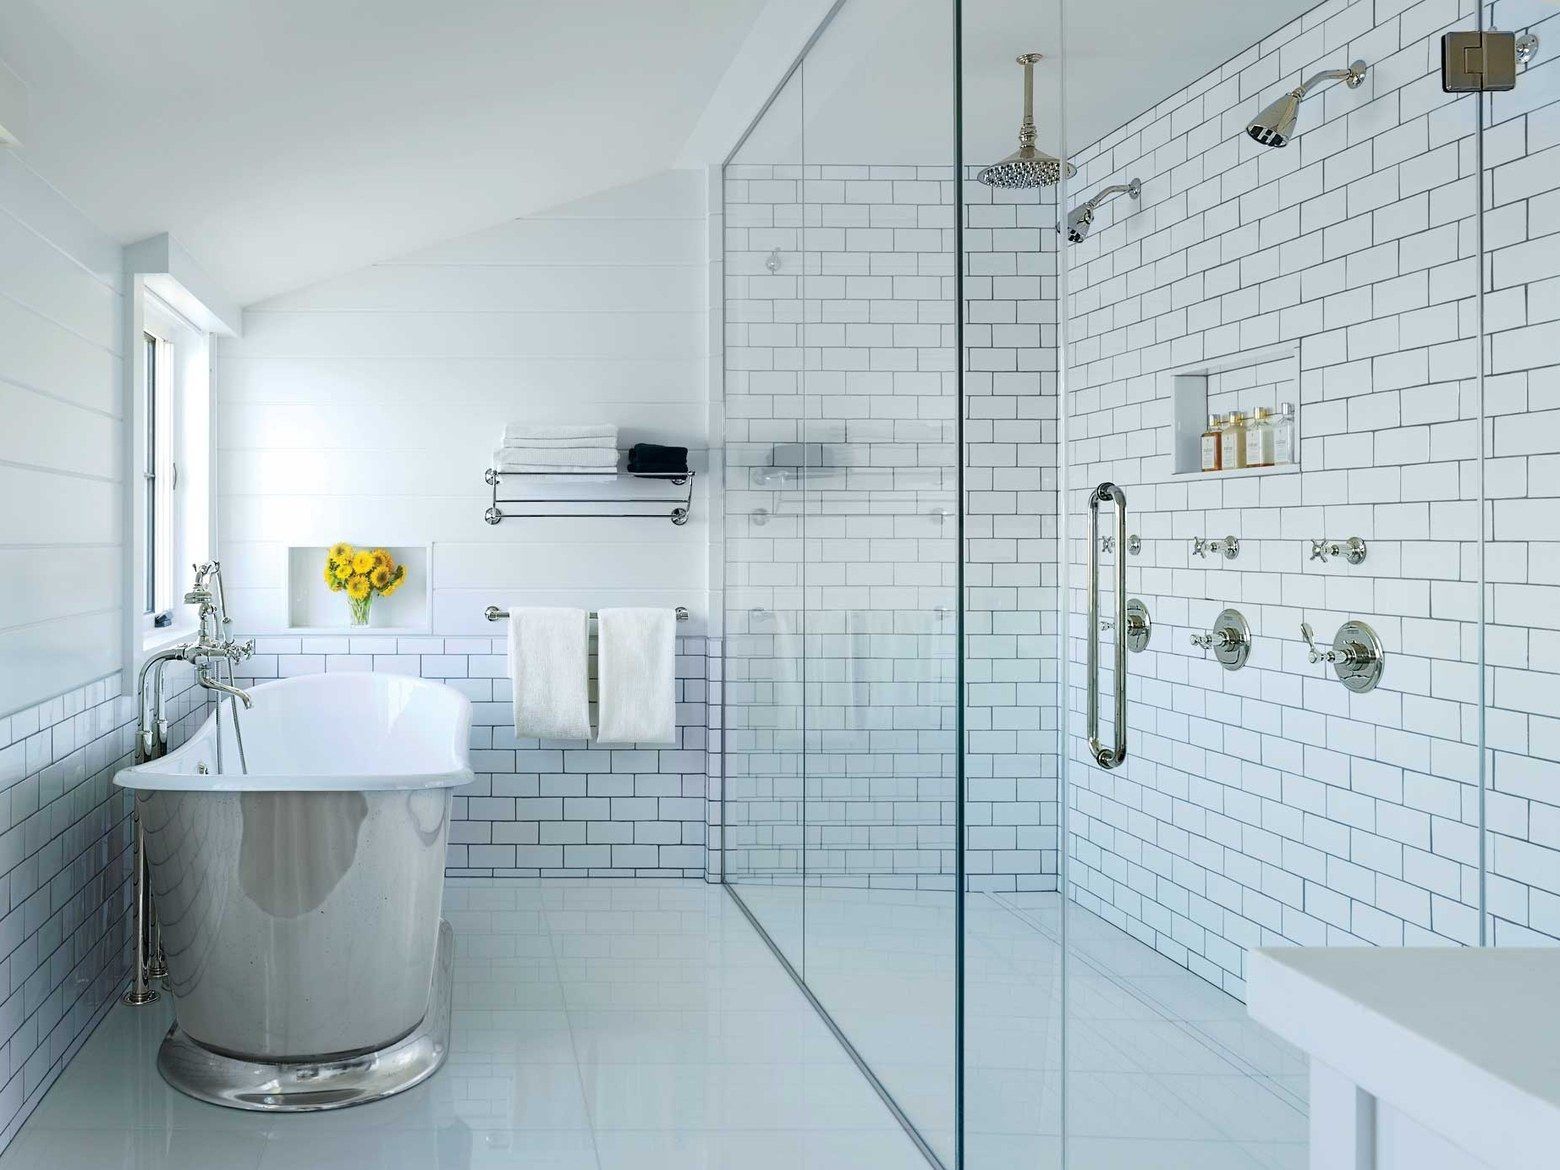 Brilliant Bathroom Space Saver Design with Glossy Bathtub and Glass Shower Room on Tile Flooring